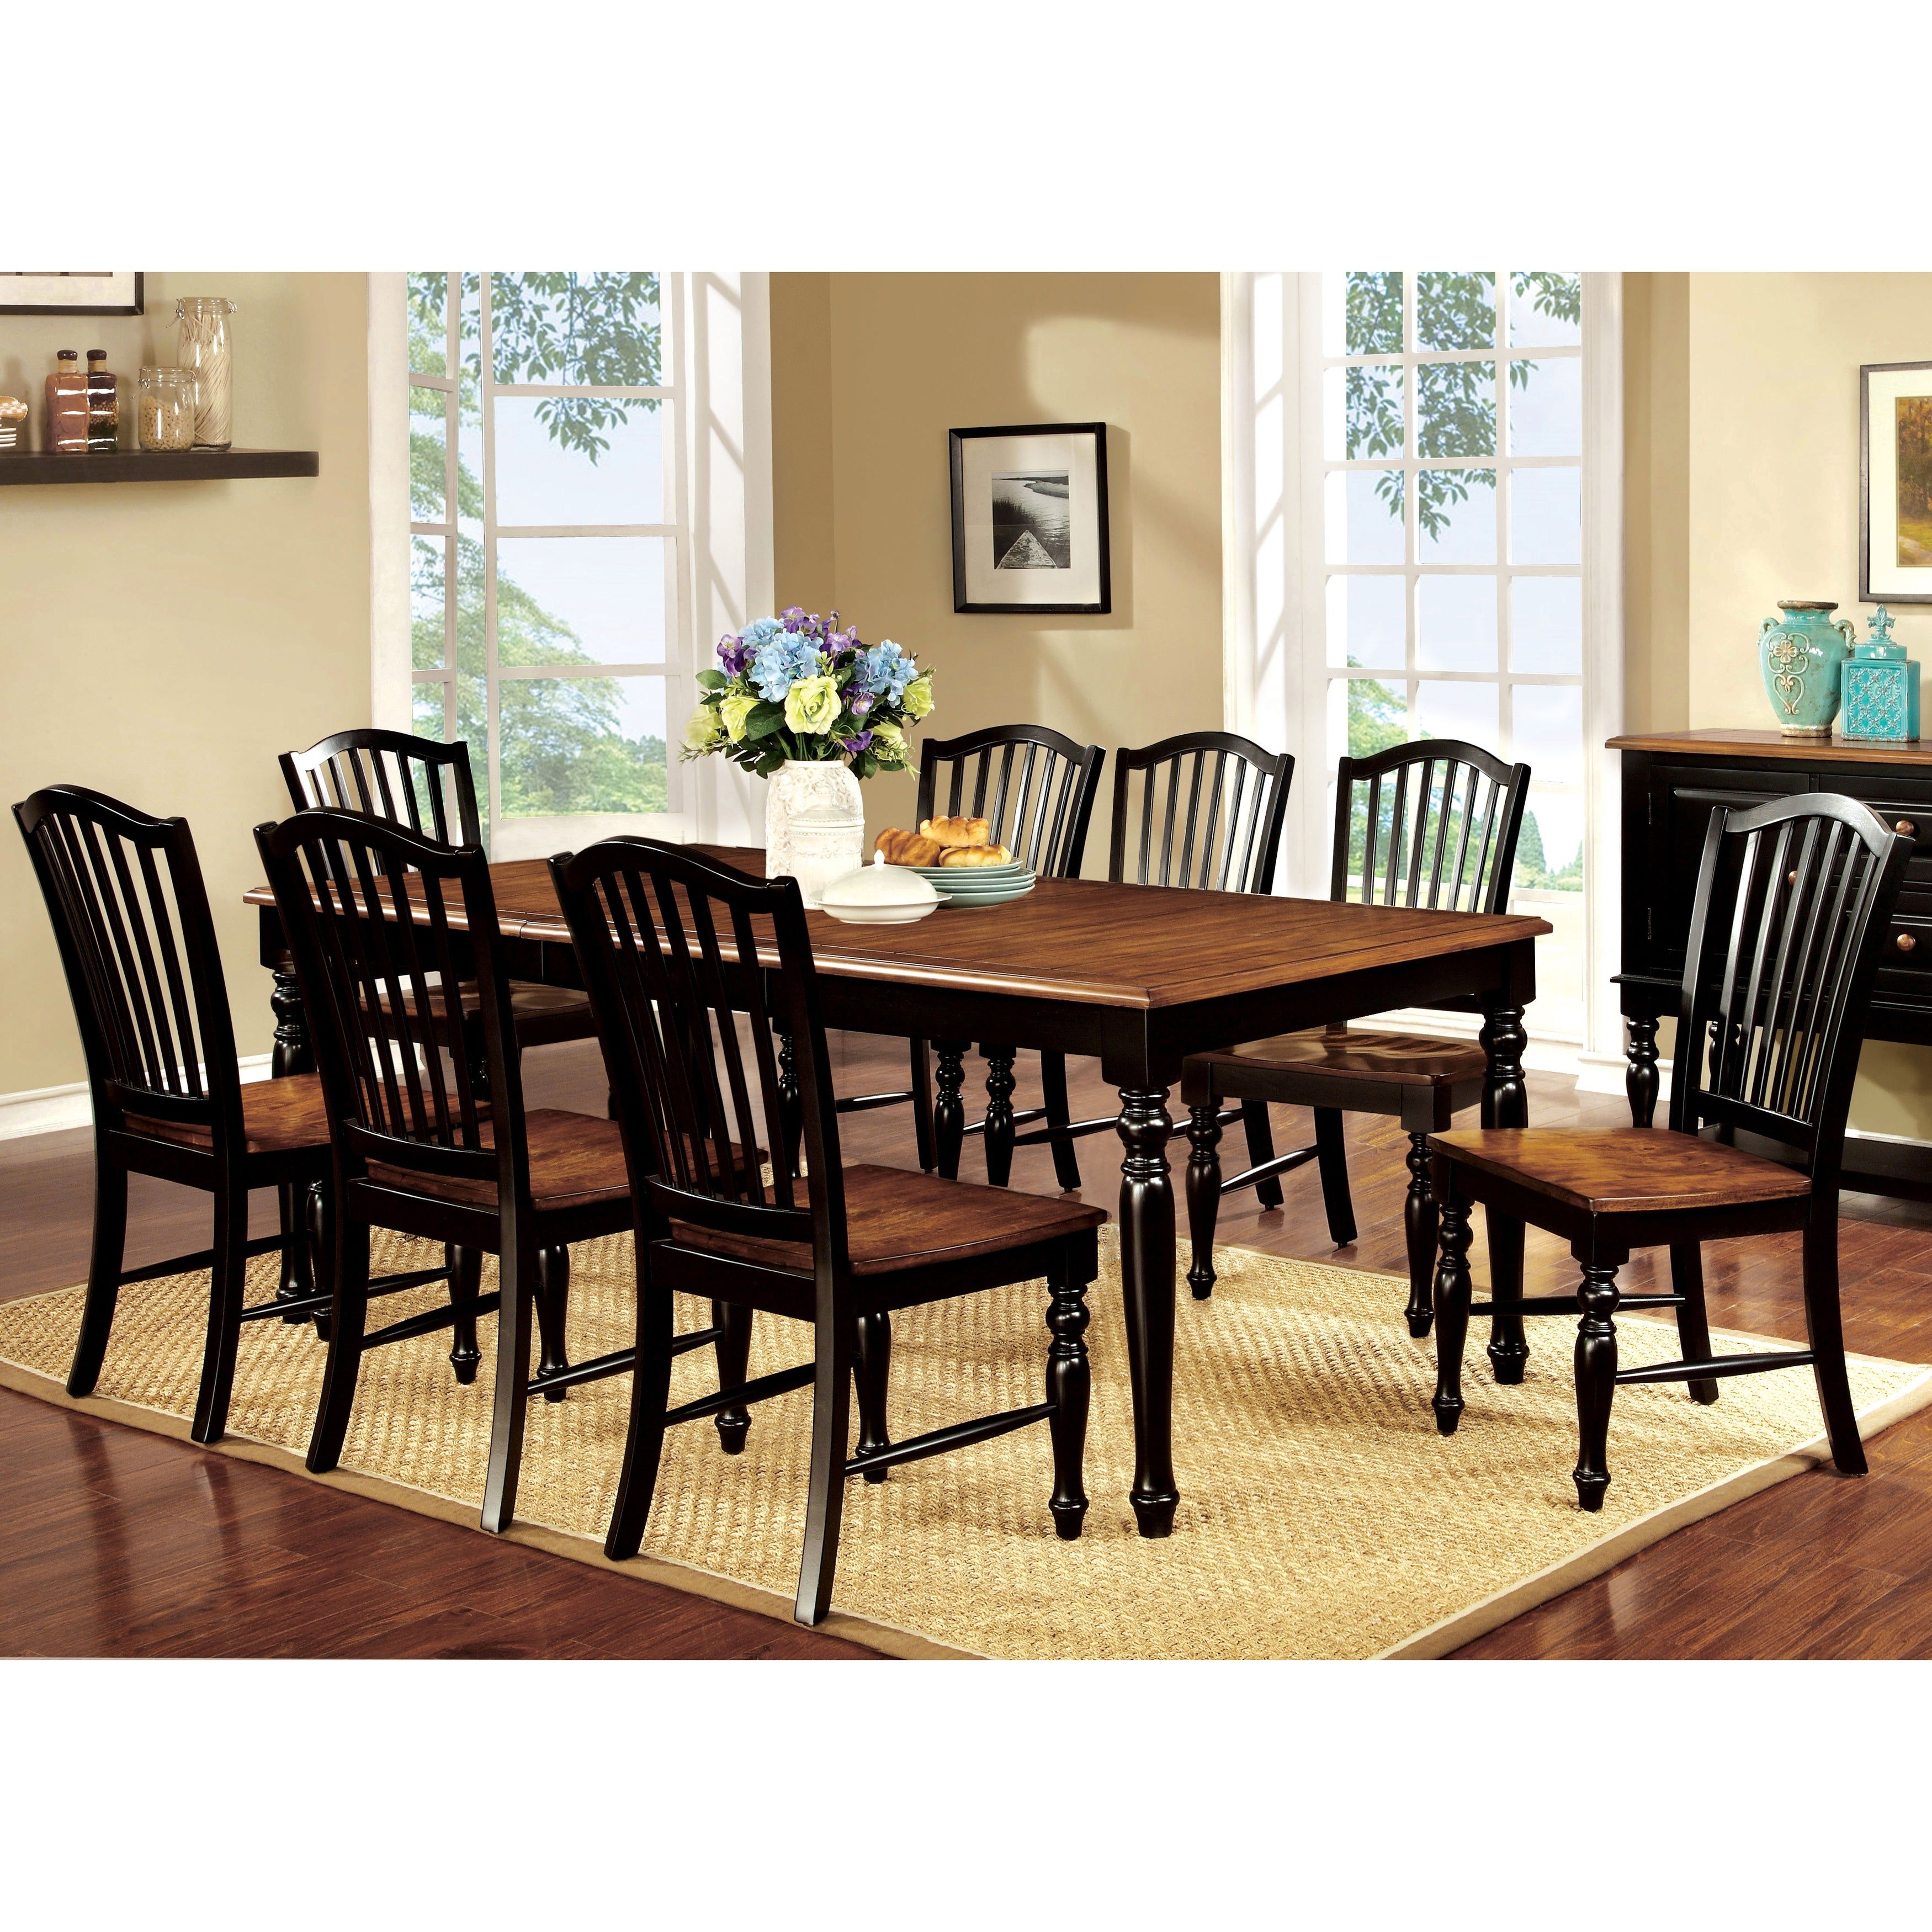 Furniture of America Levole 2-Tone 9-Piece Country Style ...